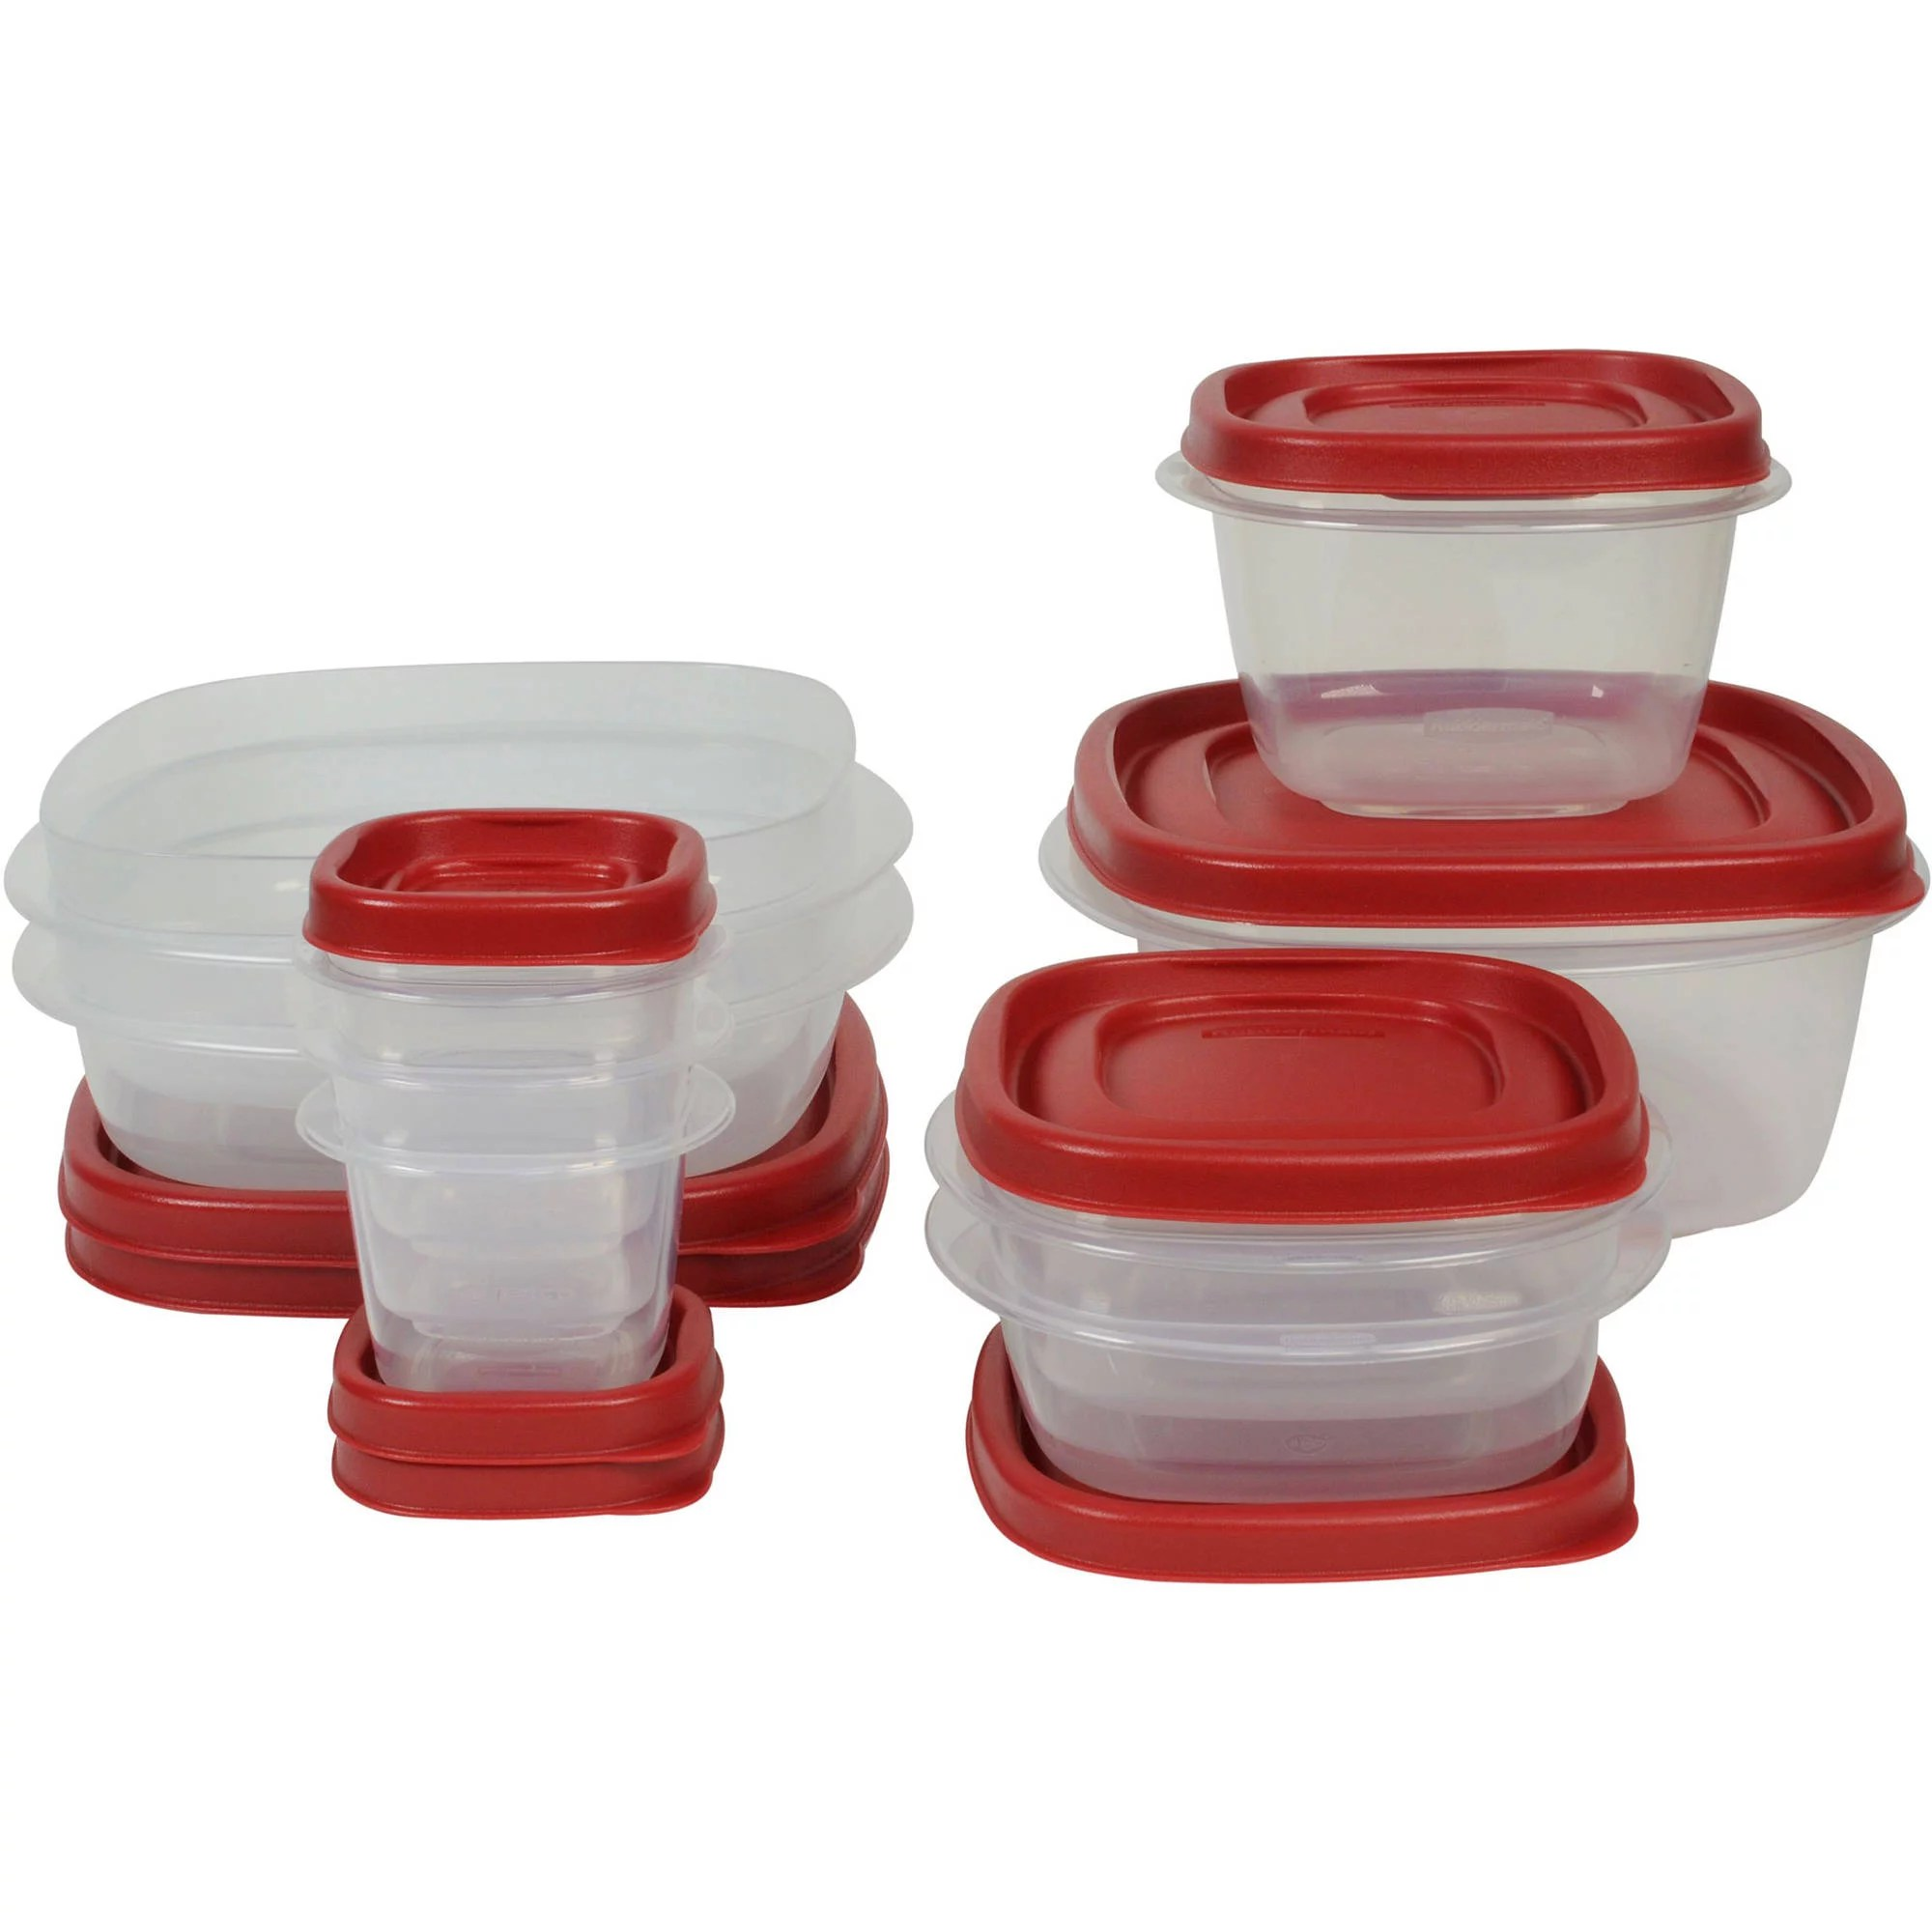 rubbermaid kitchen storage containers sink faucets lowes food with easy find lids 18 piece set walmart com